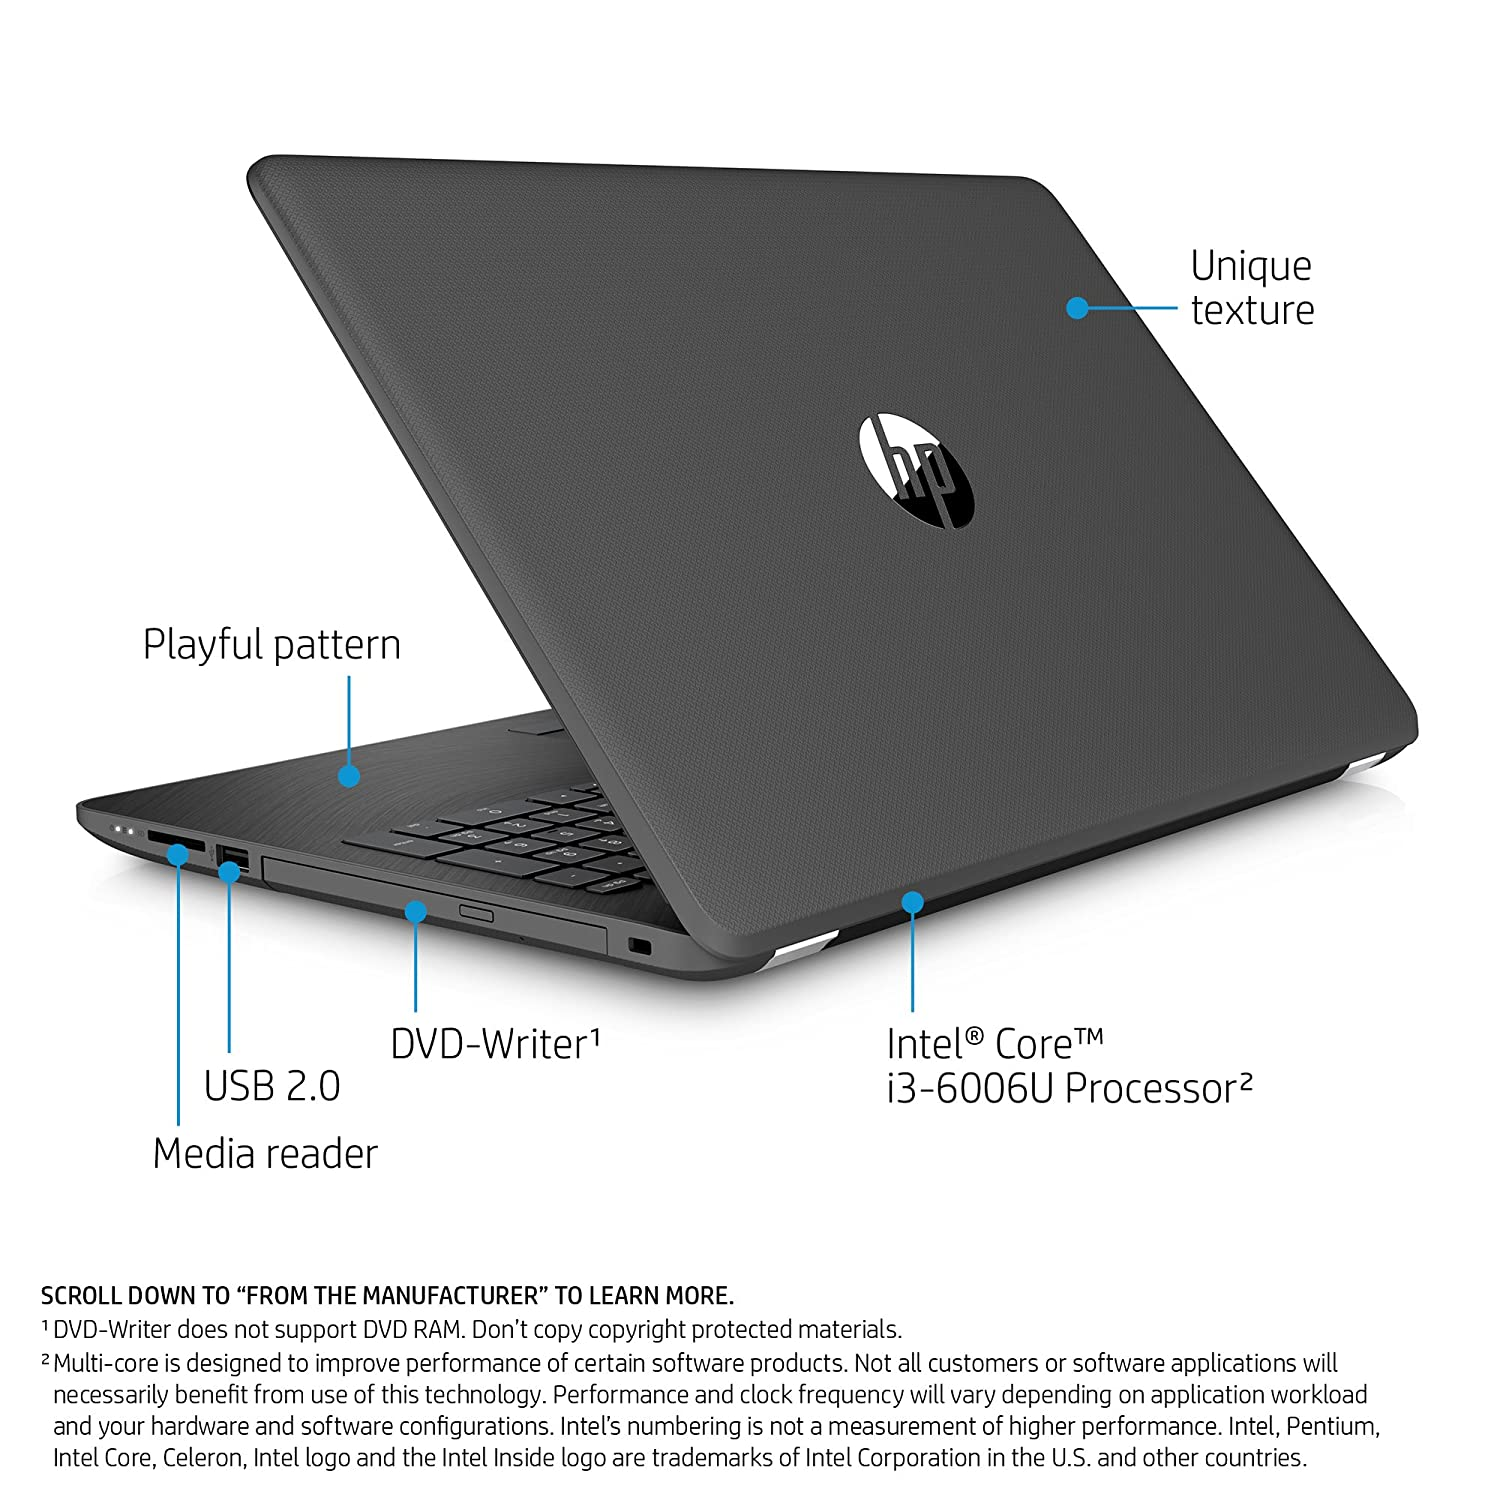 04f9a006c3a Amazon.com: HP 15-inch Laptop, Intel Core i3-6006U, 4GB RAM, 1TB hard  drive, Windows 10 (15-bs020nr, Gray): Computers & Accessories